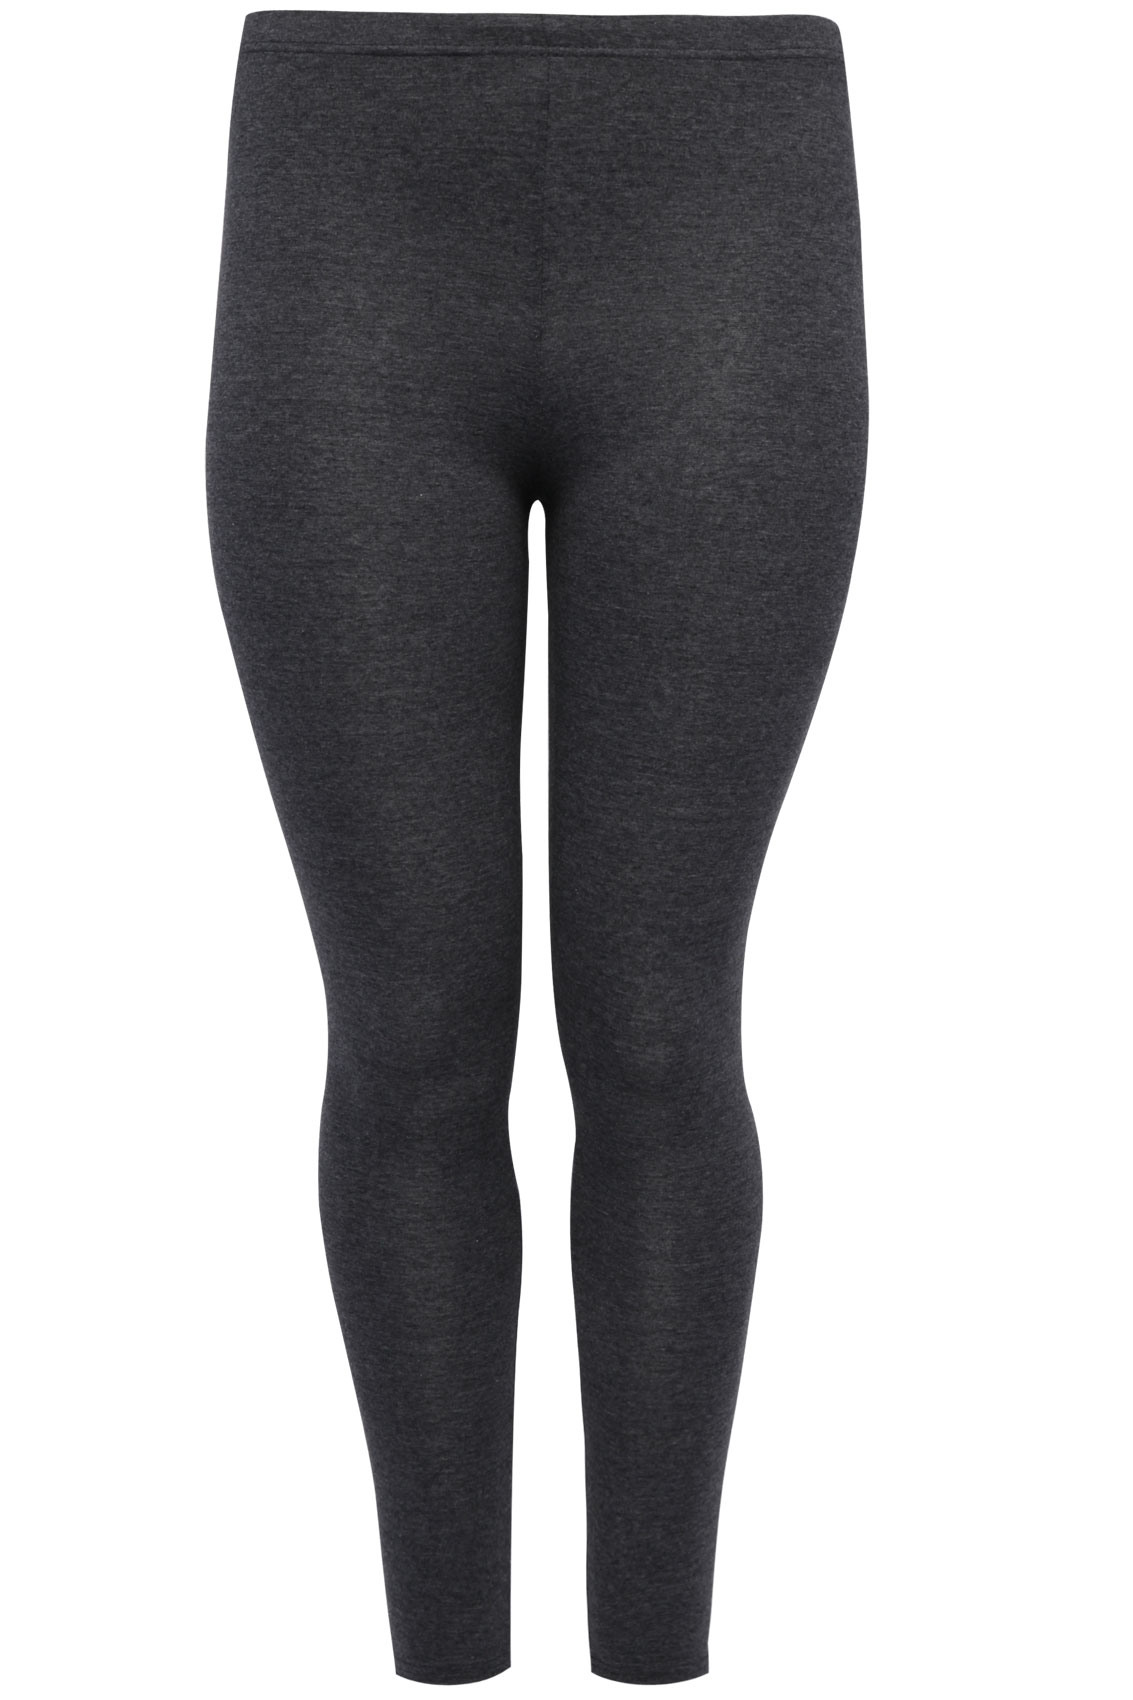 d1e02ecc2c Charcoal Grey Full Length Polyester Elastane Leggings plus Size 16 to 32